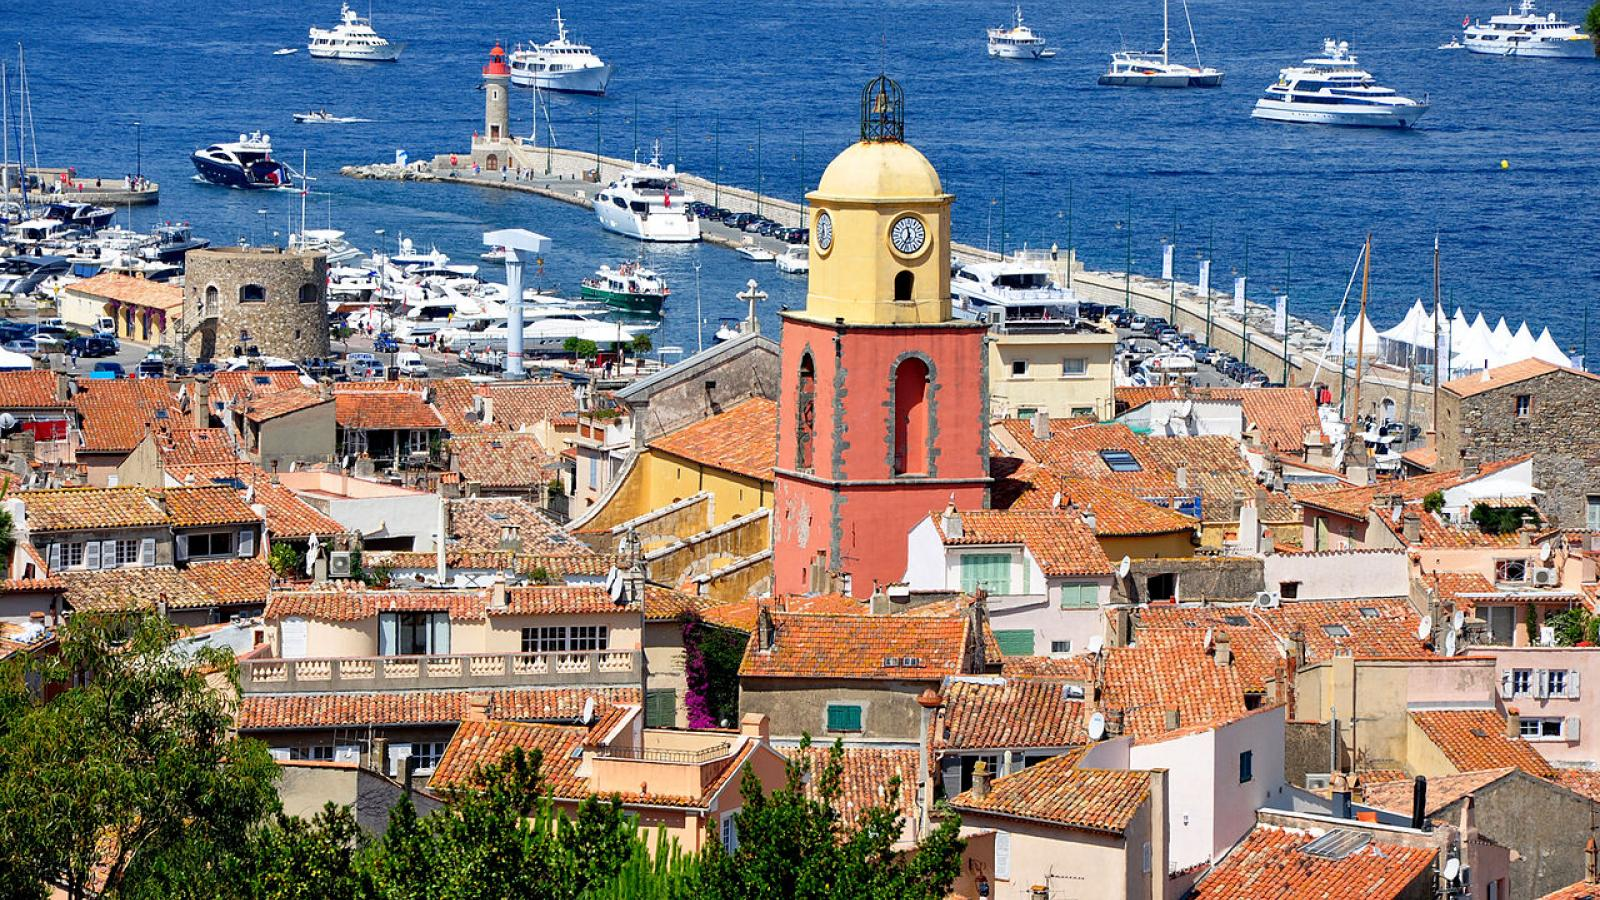 Experience Heritage Days in Saint-Tropez